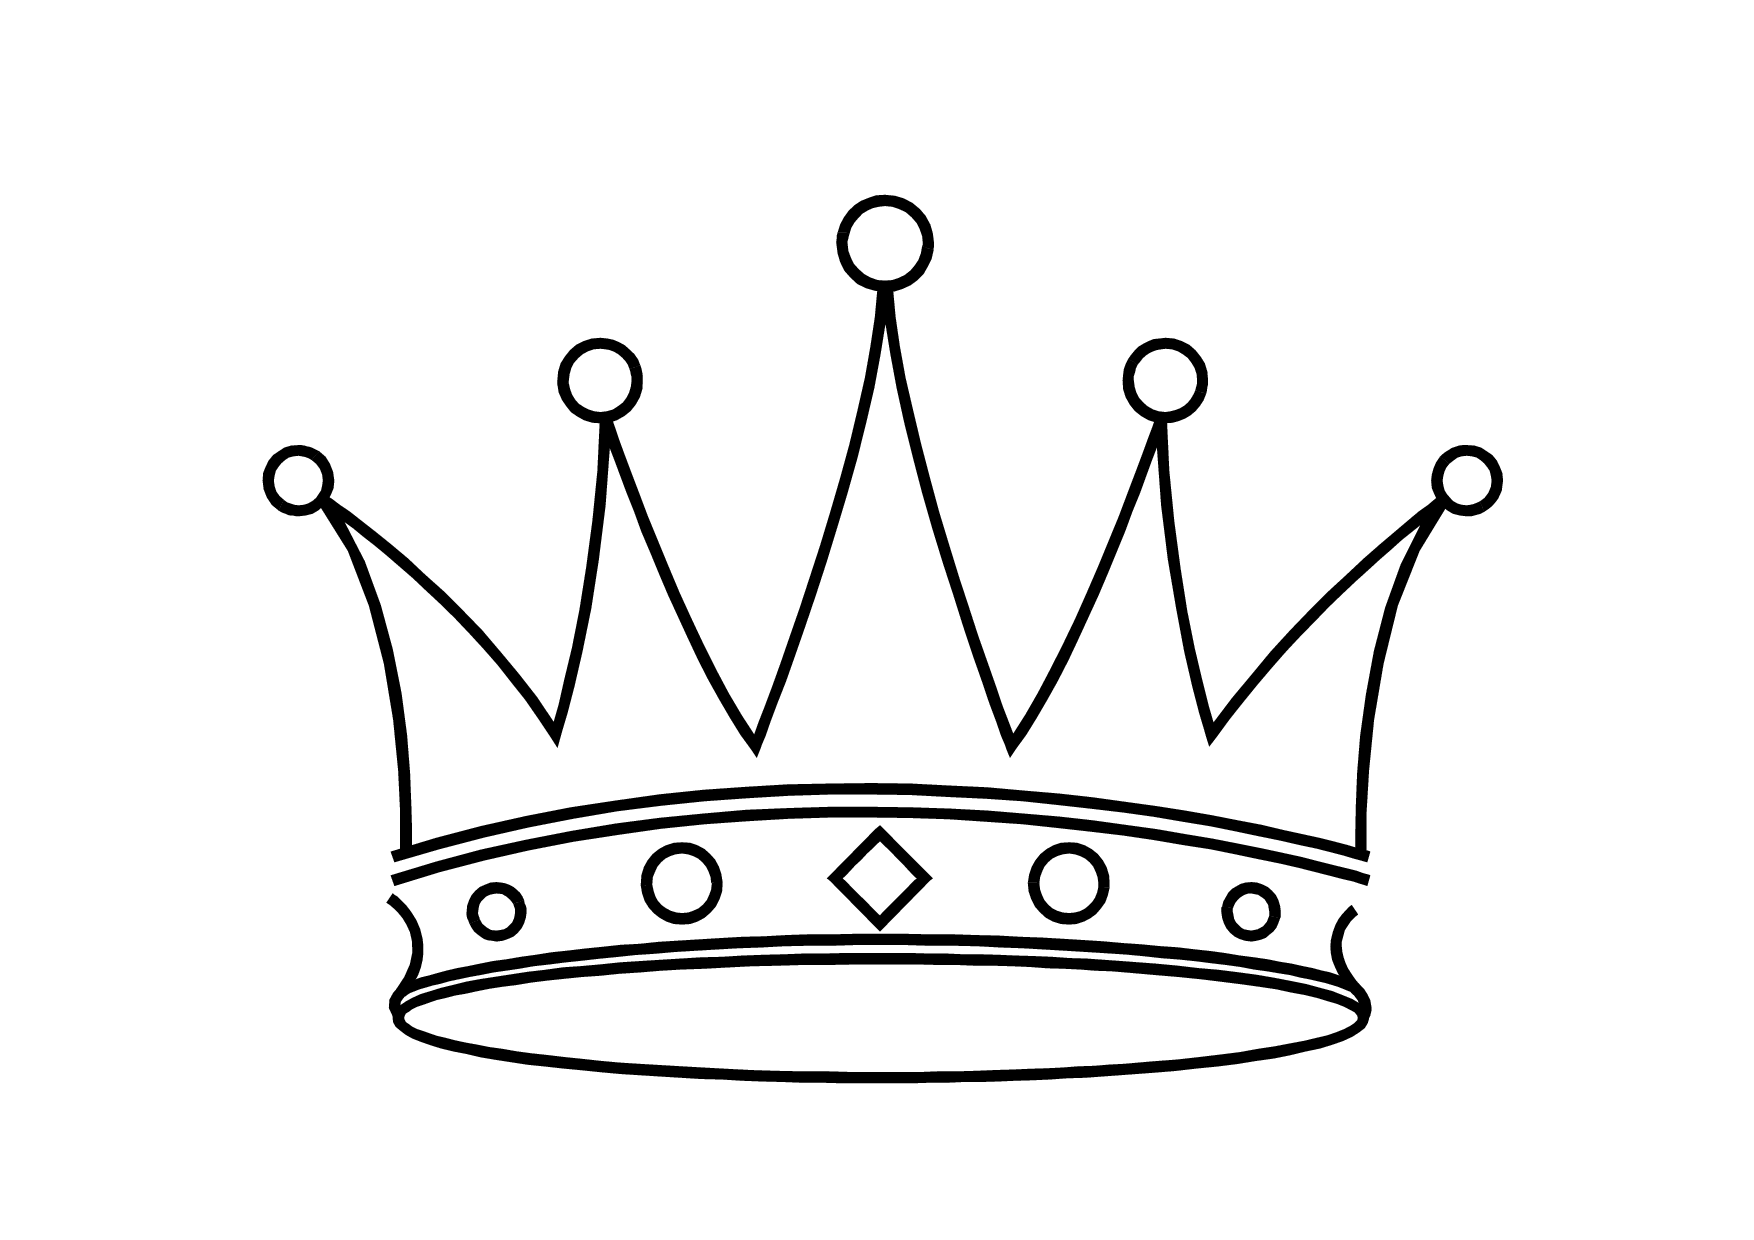 Crown Black And White Princess Black And-Crown black and white princess black and white clipart-10